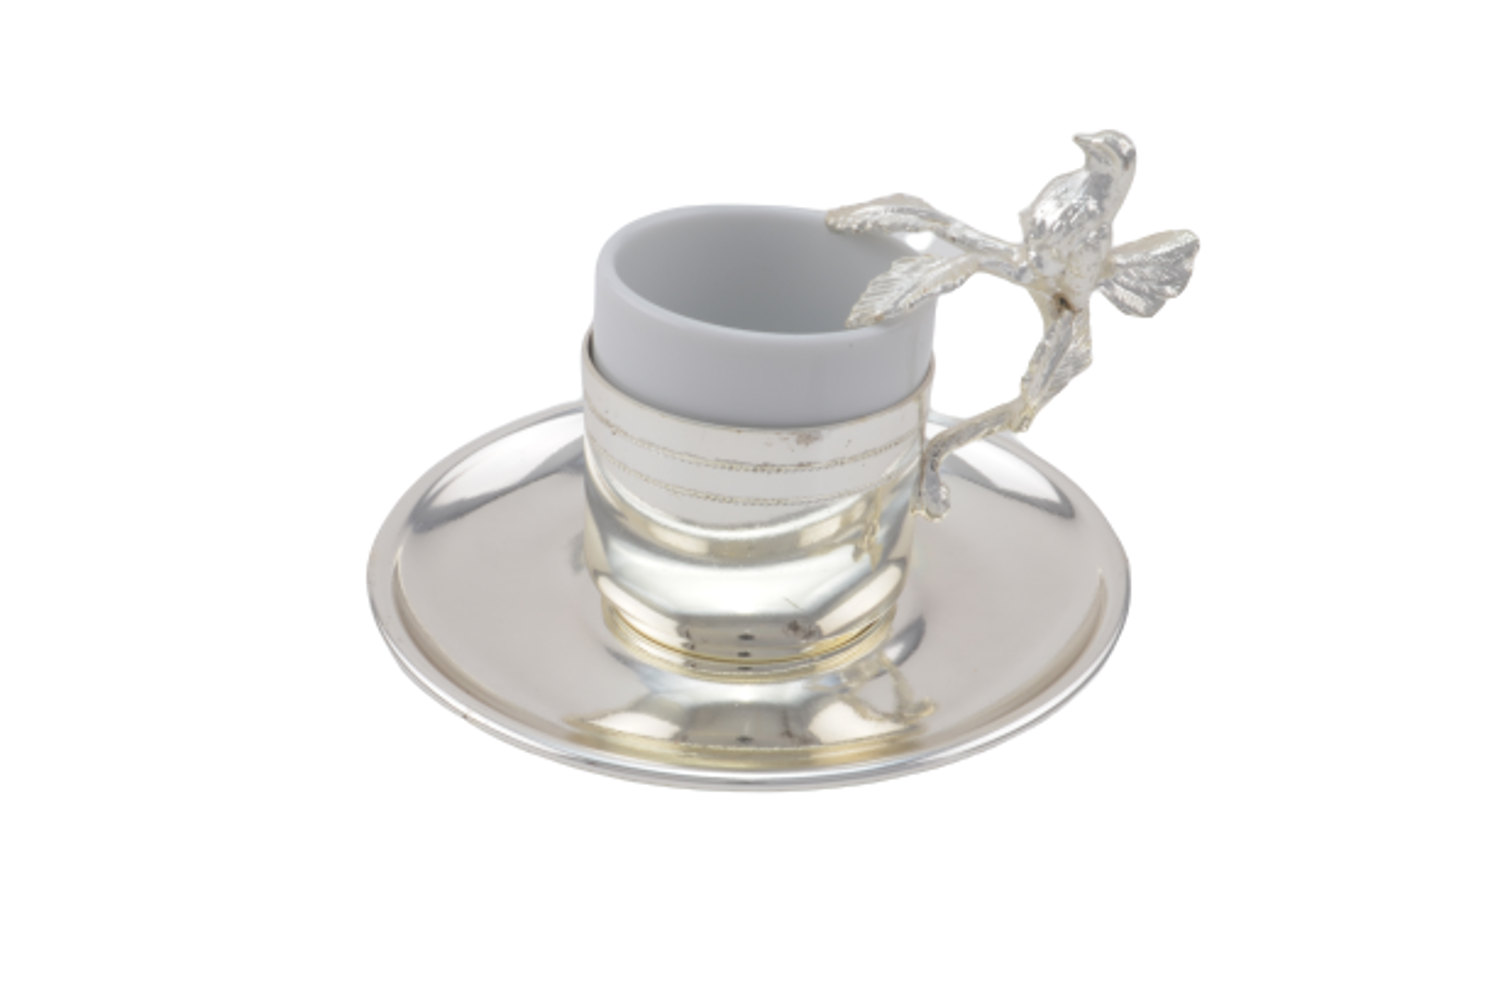 Picture of MEVLANA TURKISH COFFEE CUP SILVER BIRD